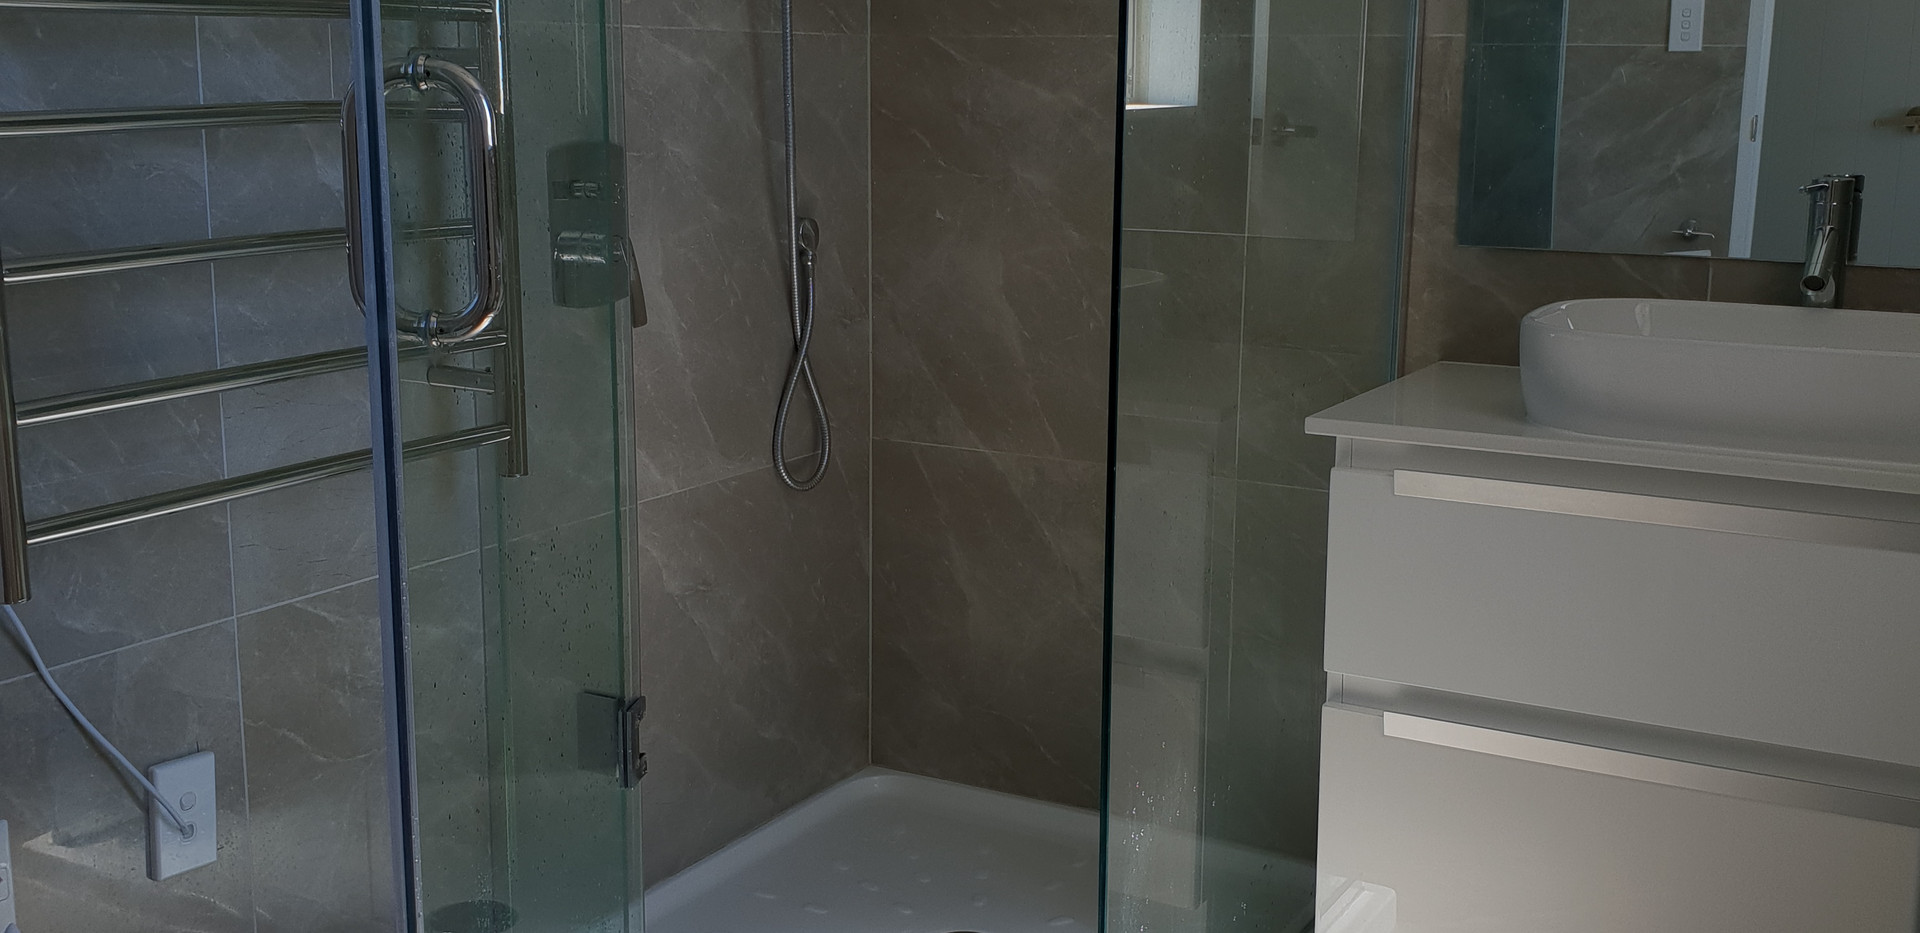 Luxury shower after clean